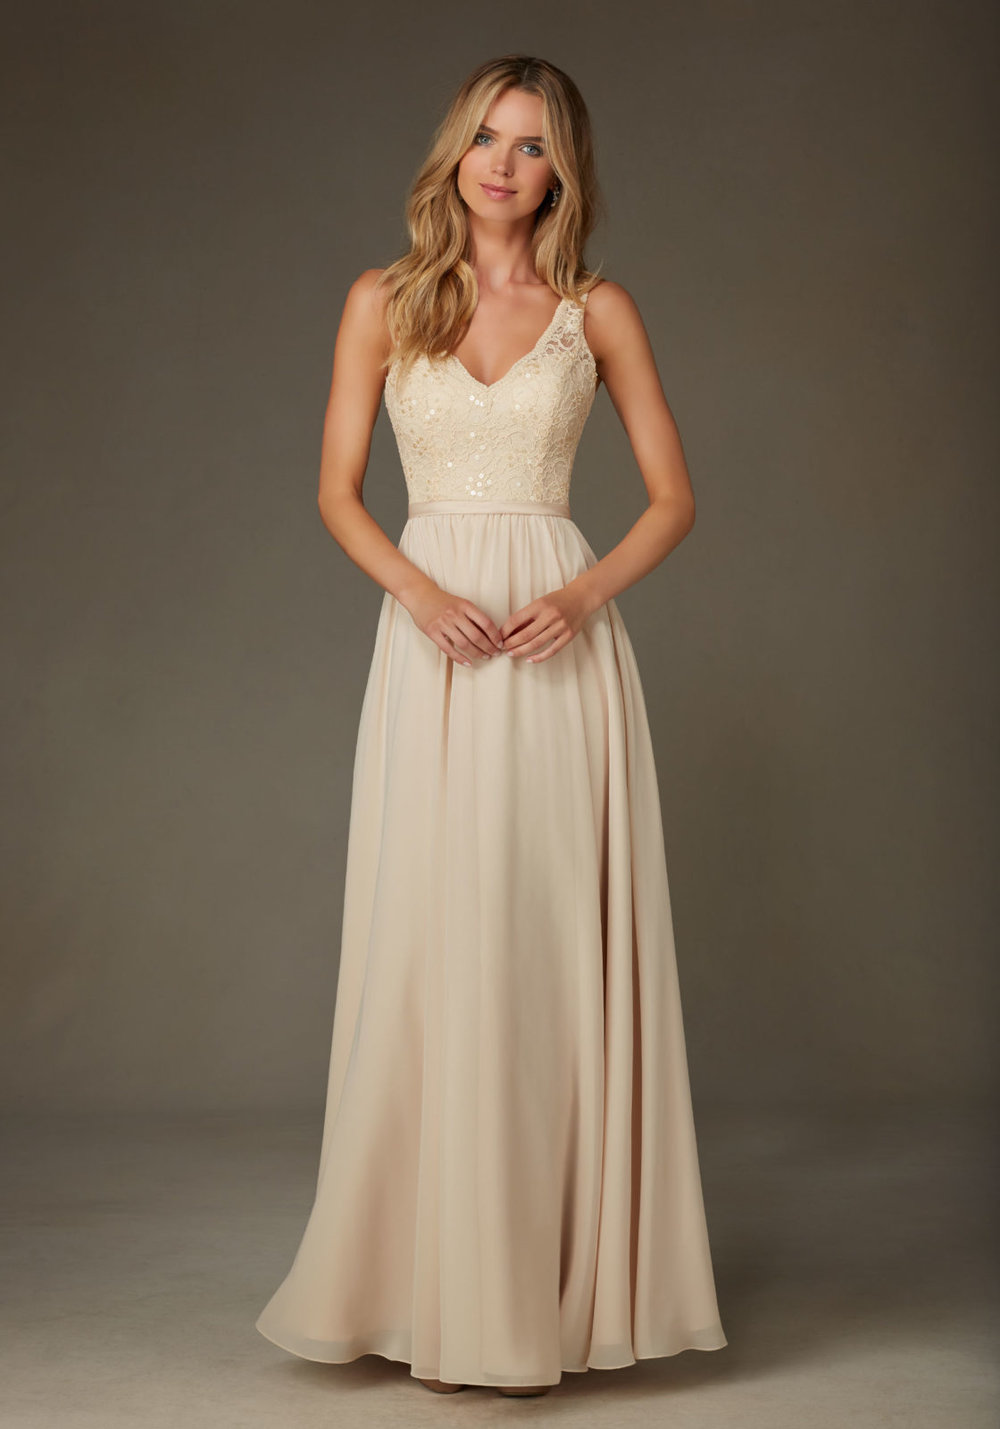 Beaded lace chiffon Mori Lee Bridesmaids Dress